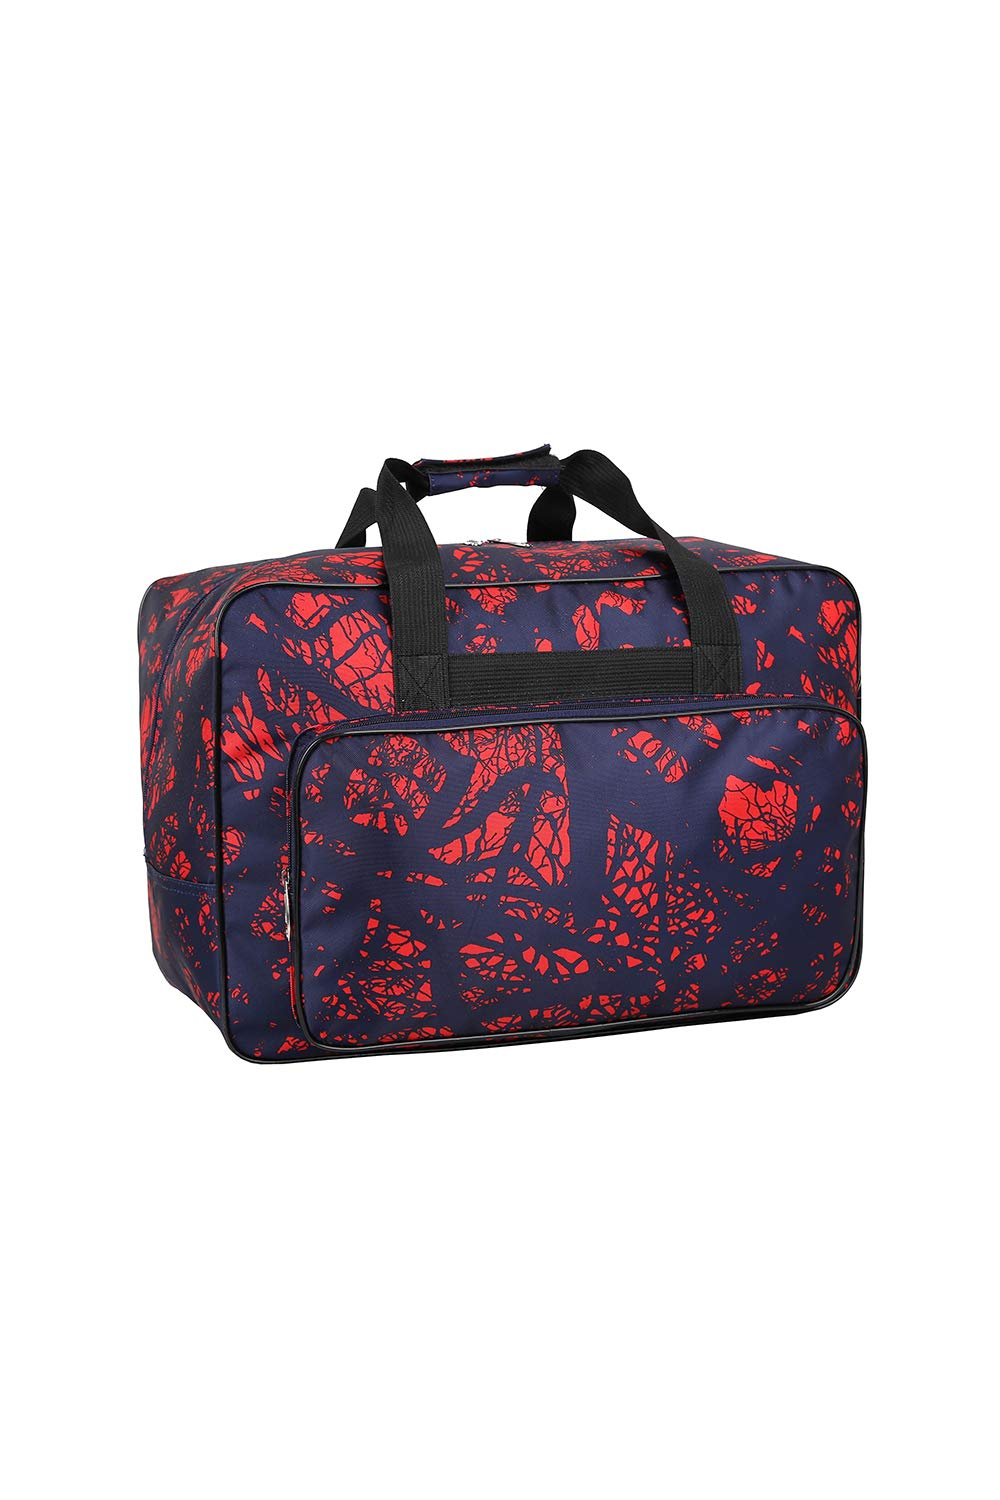 Sewing Machine Carrying Case Tote Bag,Padded Storage Cover Carrying Case with Pockets and Handles ,Canvas Orange